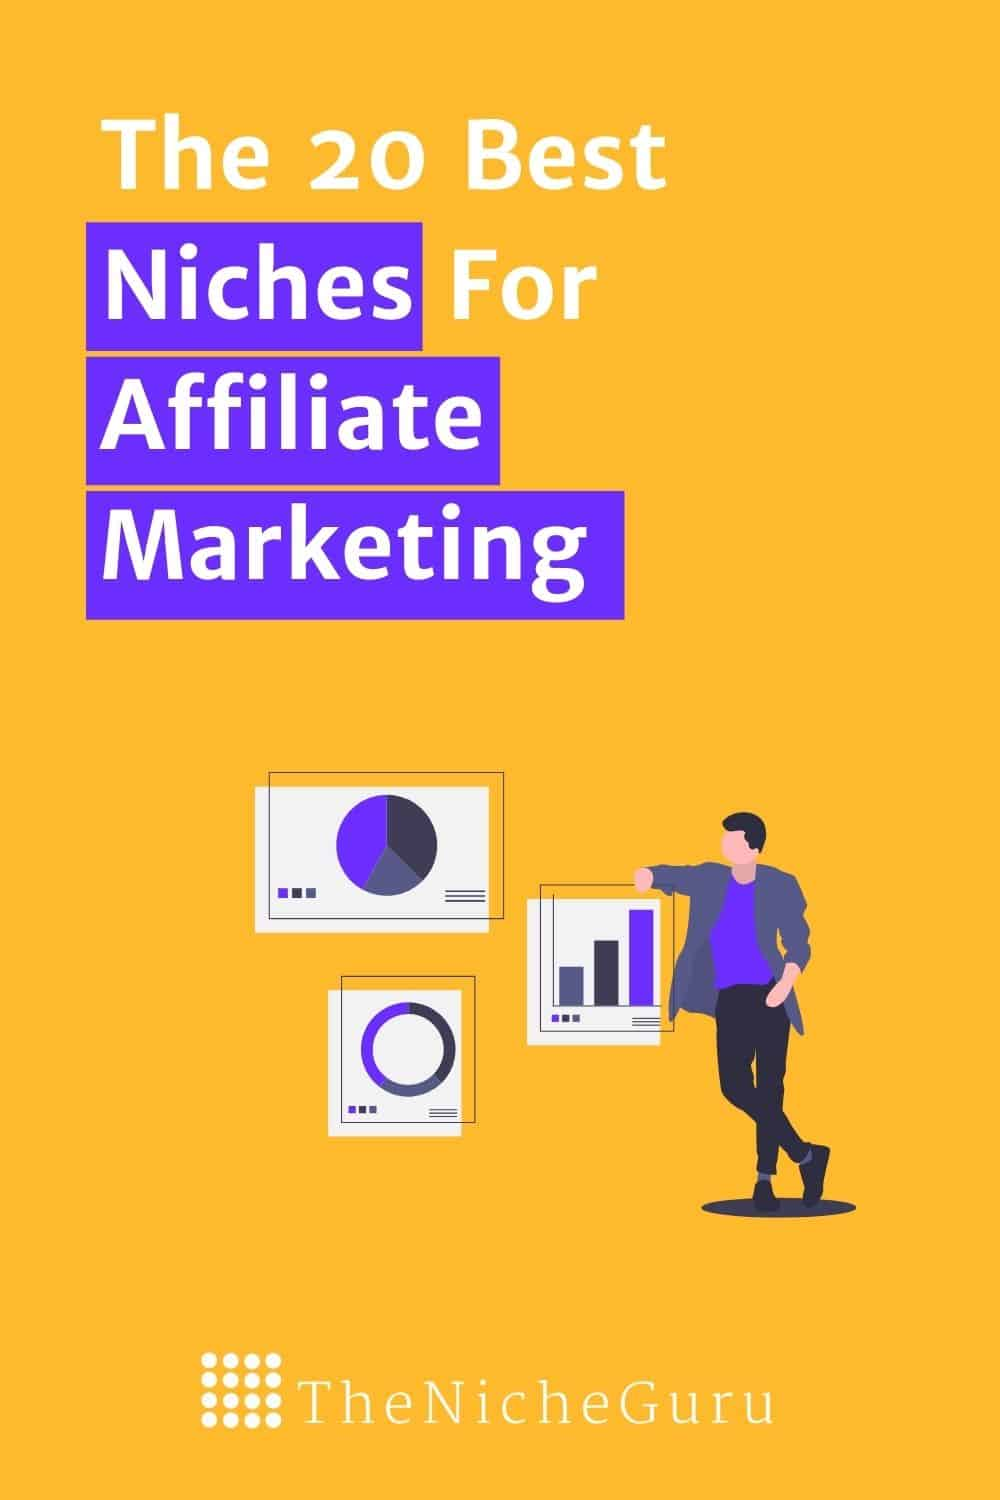 Discover the niches for affiliate marketing for beginners. This post will help you understand how to find profitable niches and strategies to succeed with affiliate marketing-You will learn how to make money from affiliate marketing with your blog. #niche #nichemarketing #nichetips #affiliatemarketing #makemoneyonline